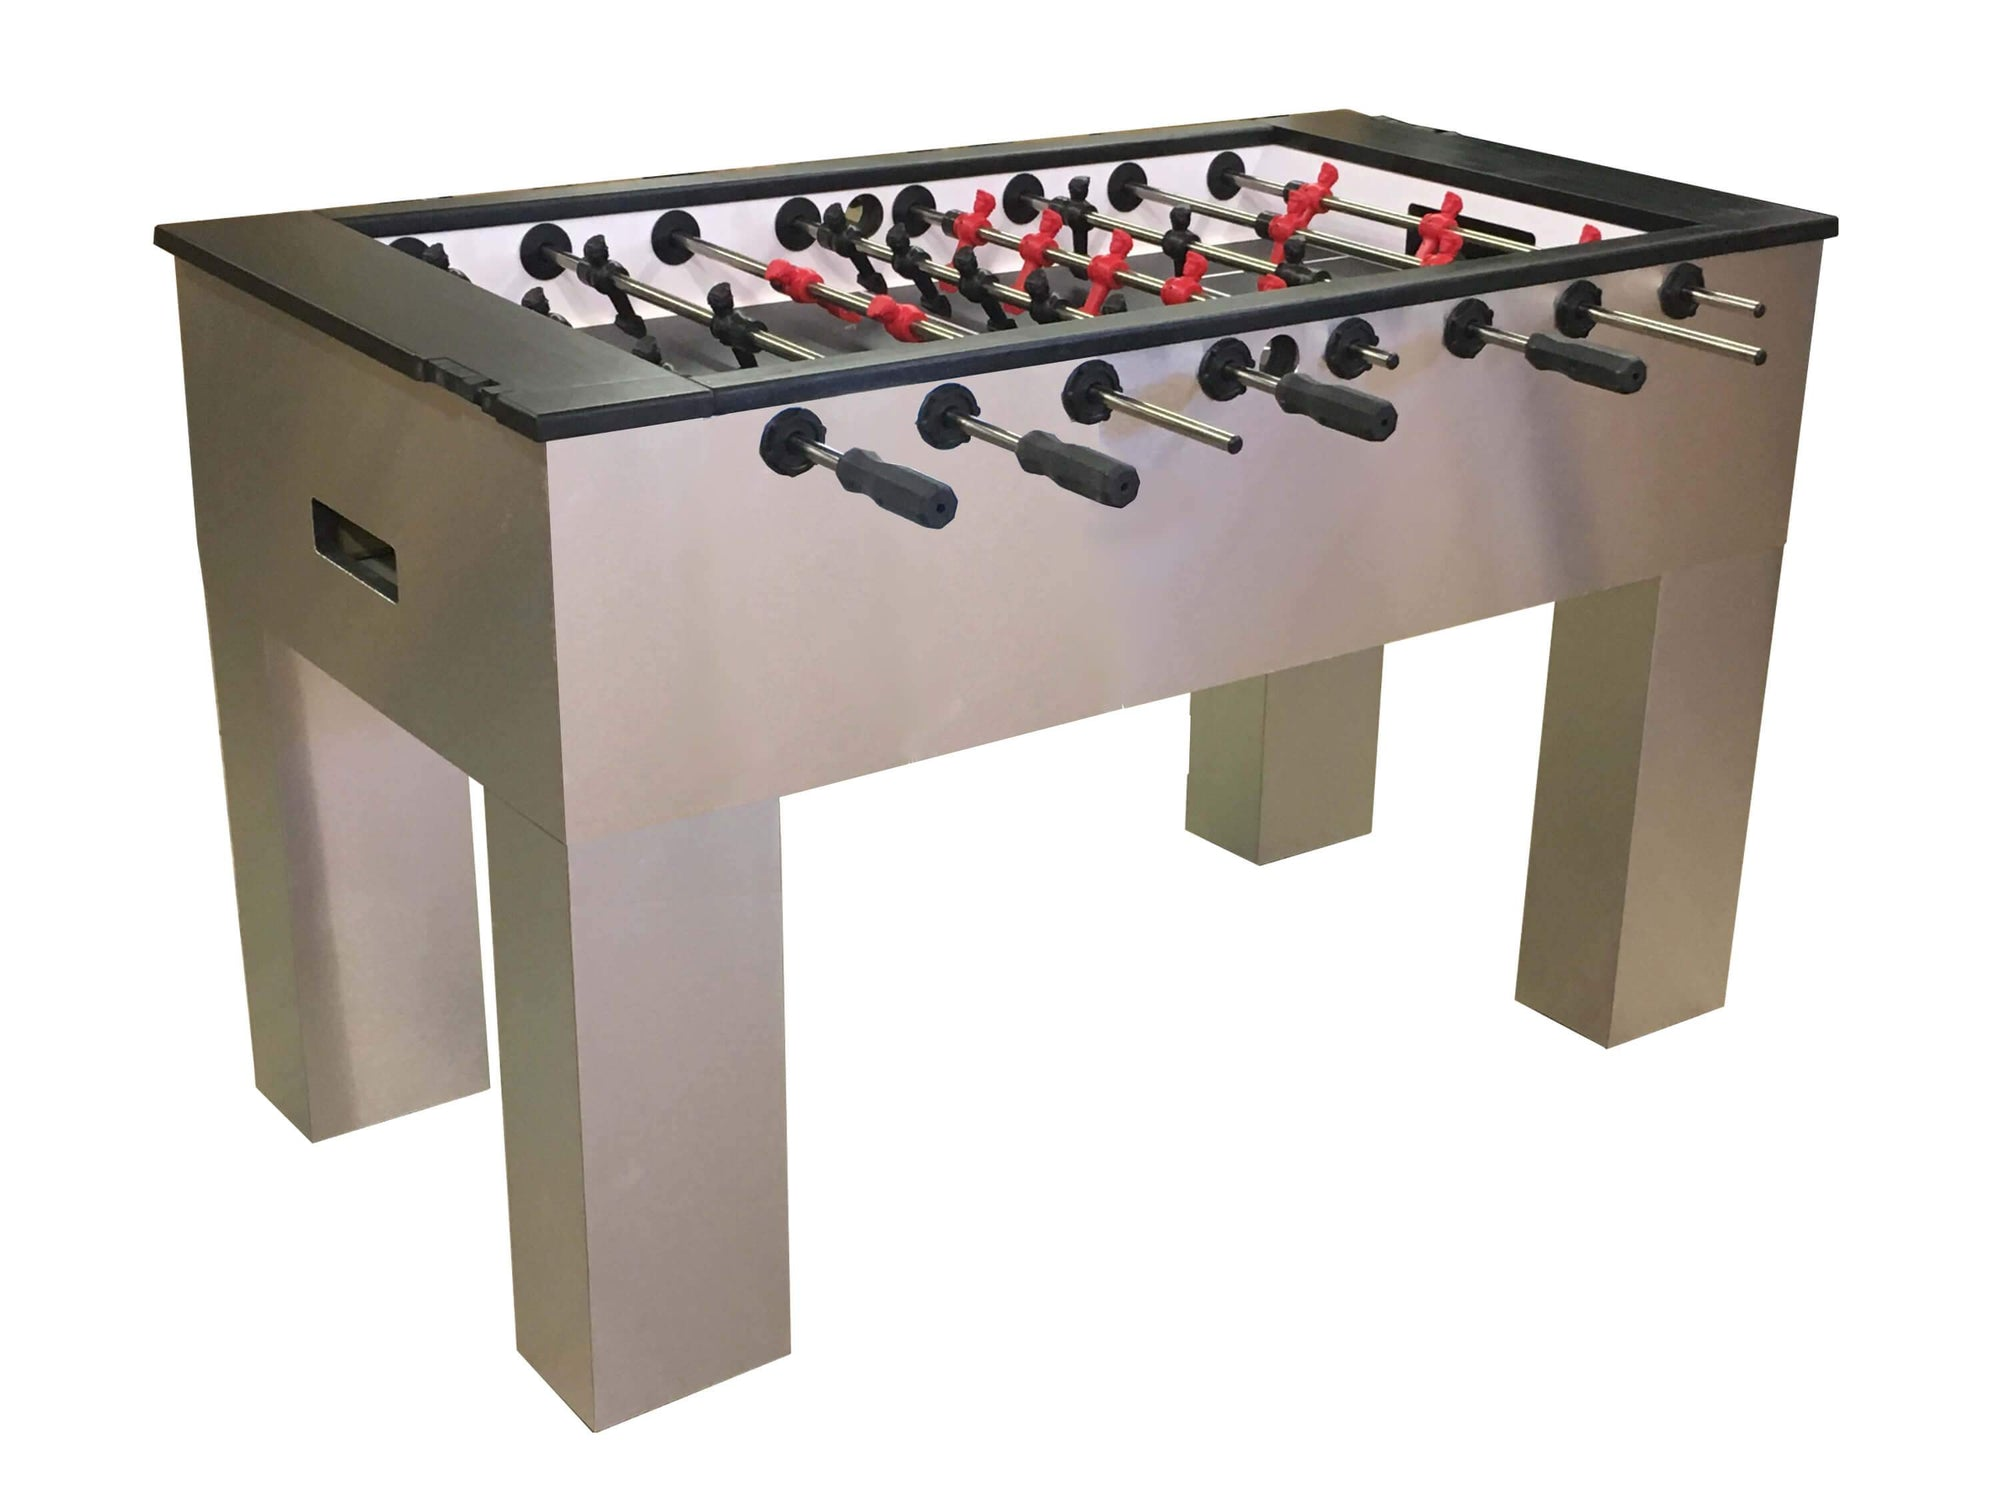 "Performance Games Sure Shot IS Flush Legs Foosball Table 56"" - Gaming Blaze"